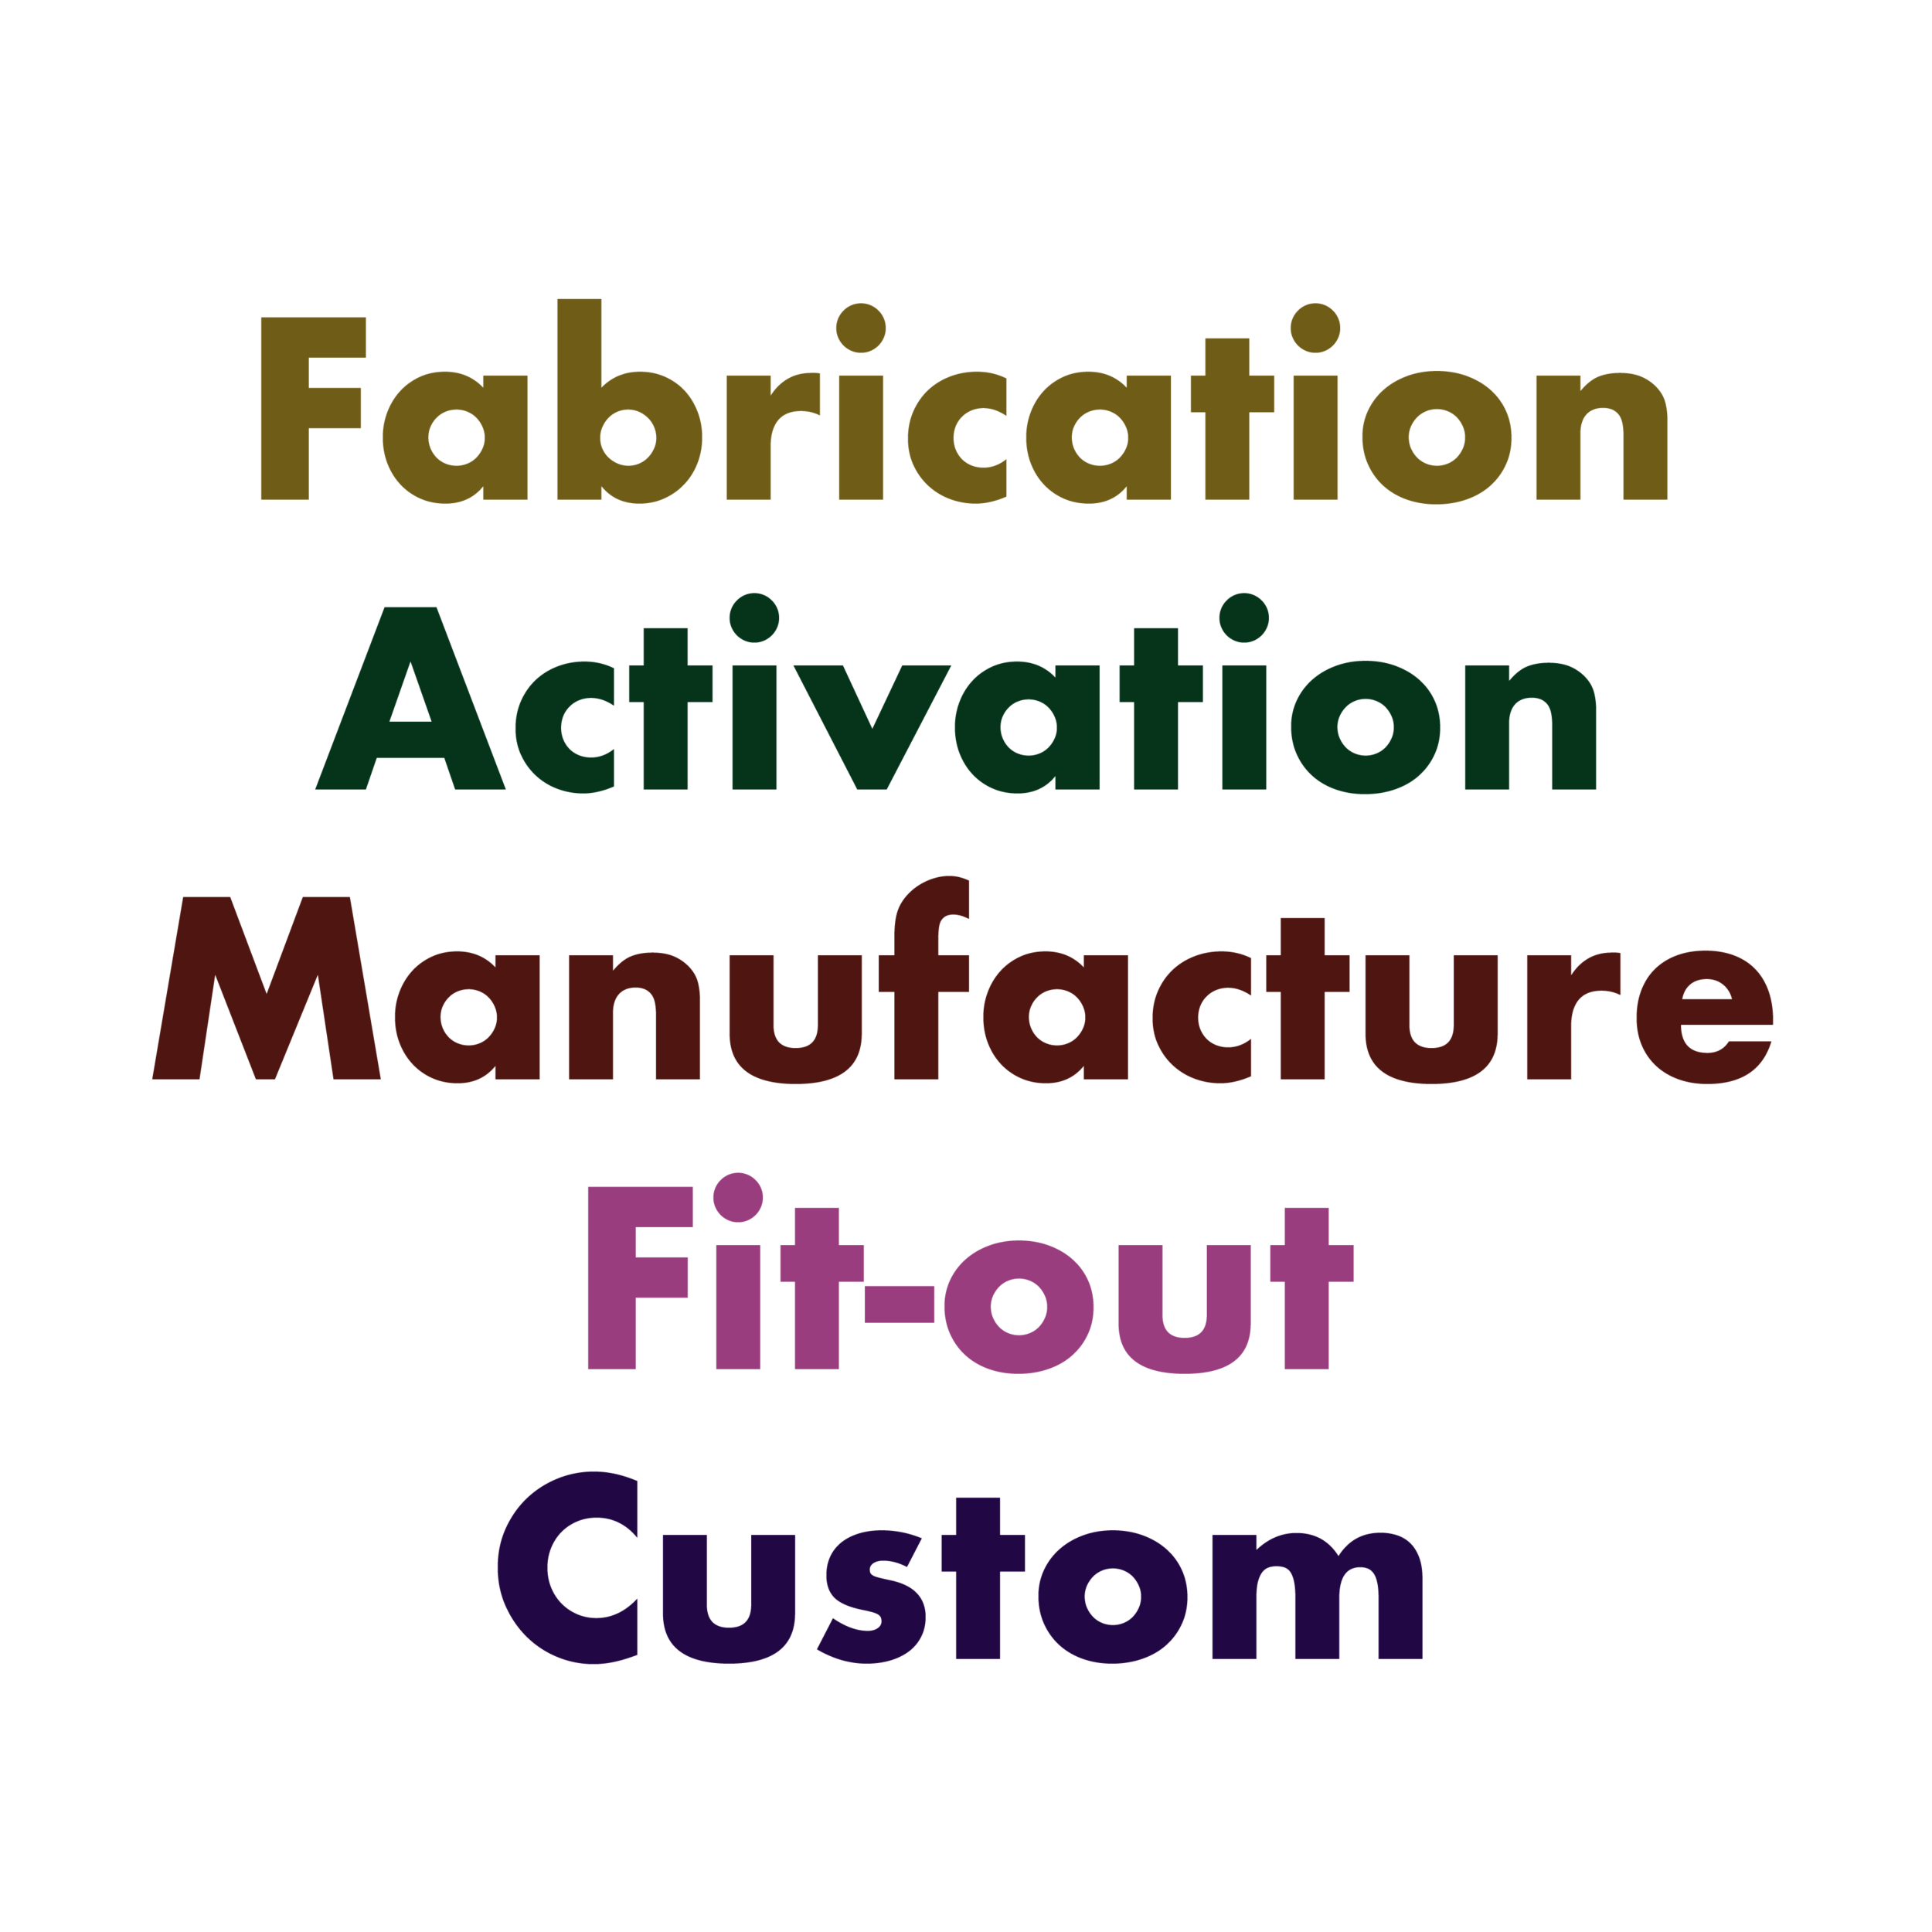 Fabrication-Activation-Manufacture-Custom-Fitout01-01.png